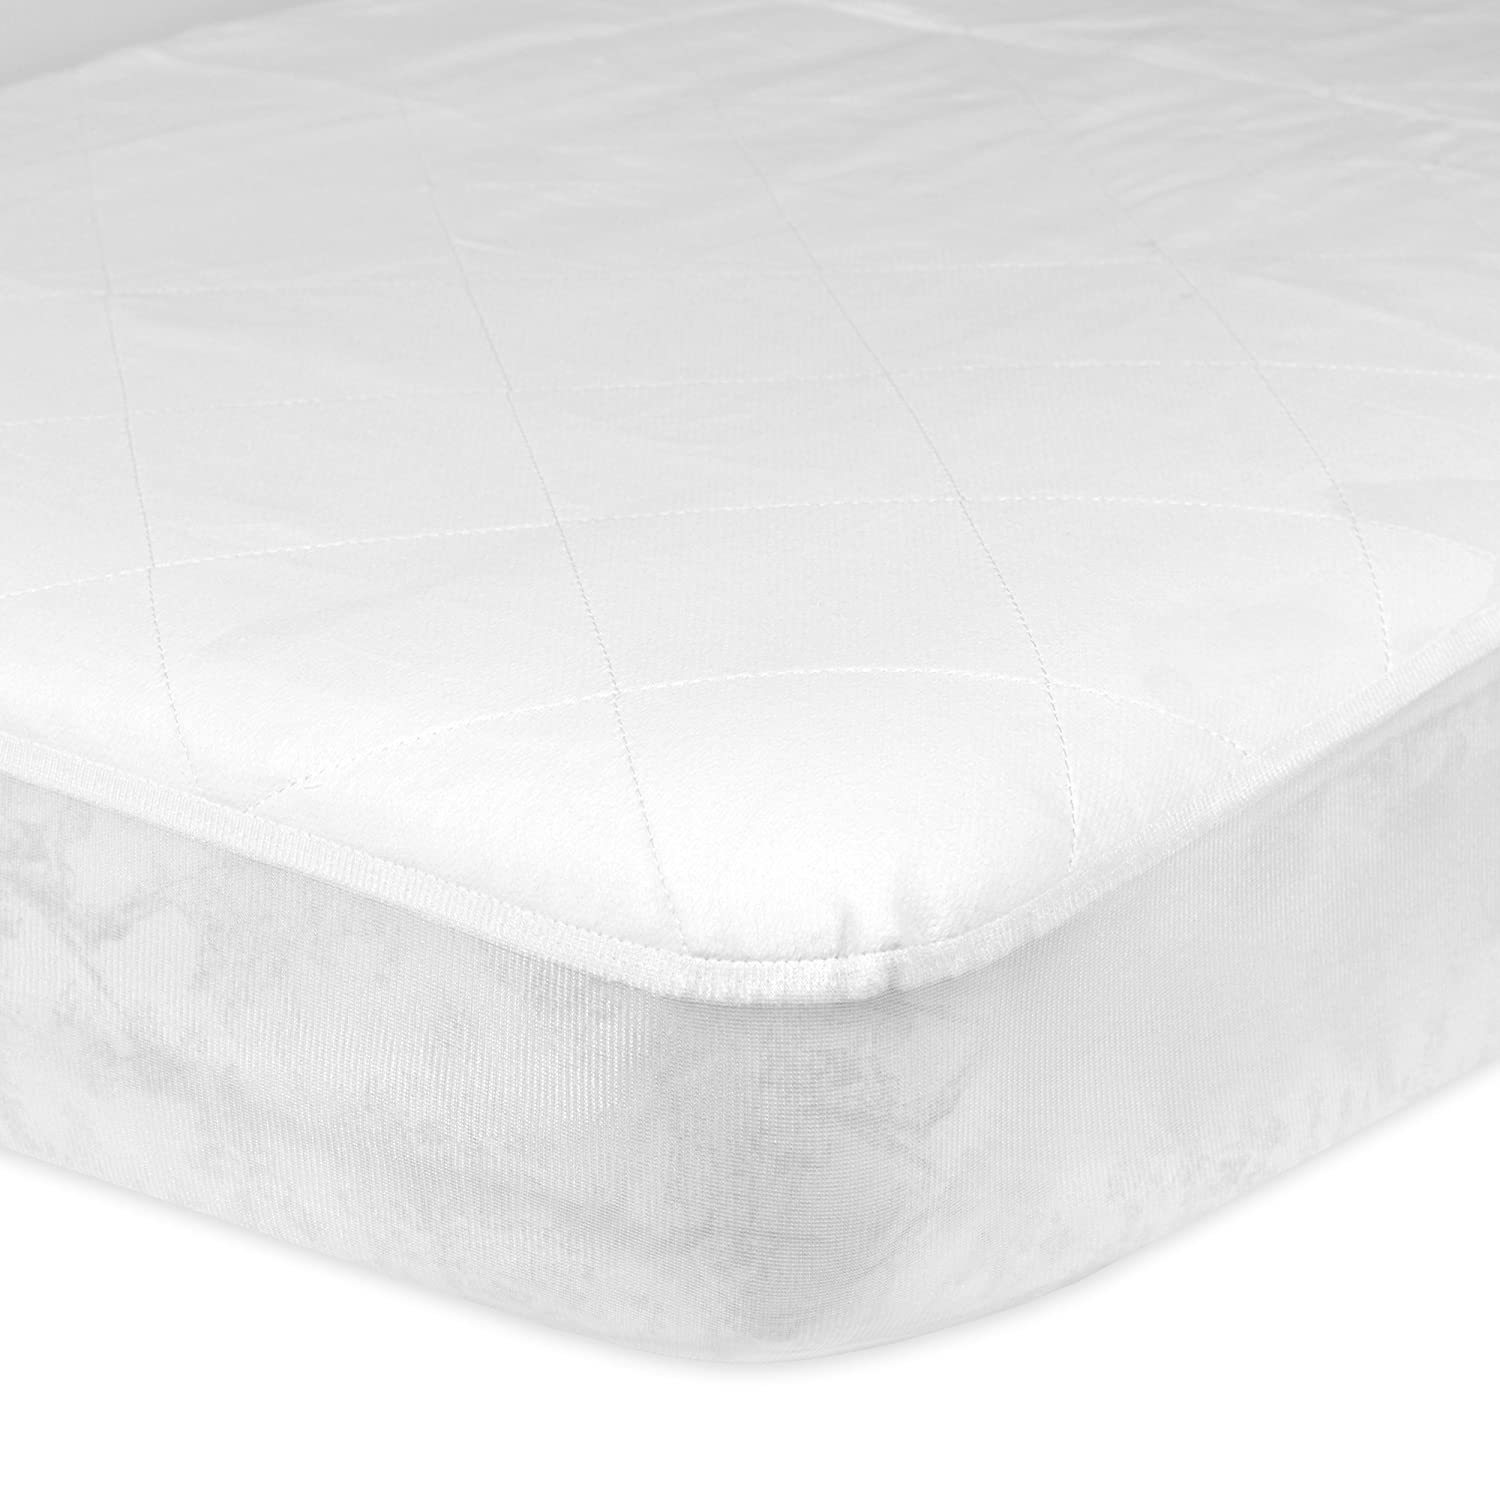 Gerber Quilted Fitted Crib Pad with Waterproof Barrier, White, 28 x 52 x 9 36315G